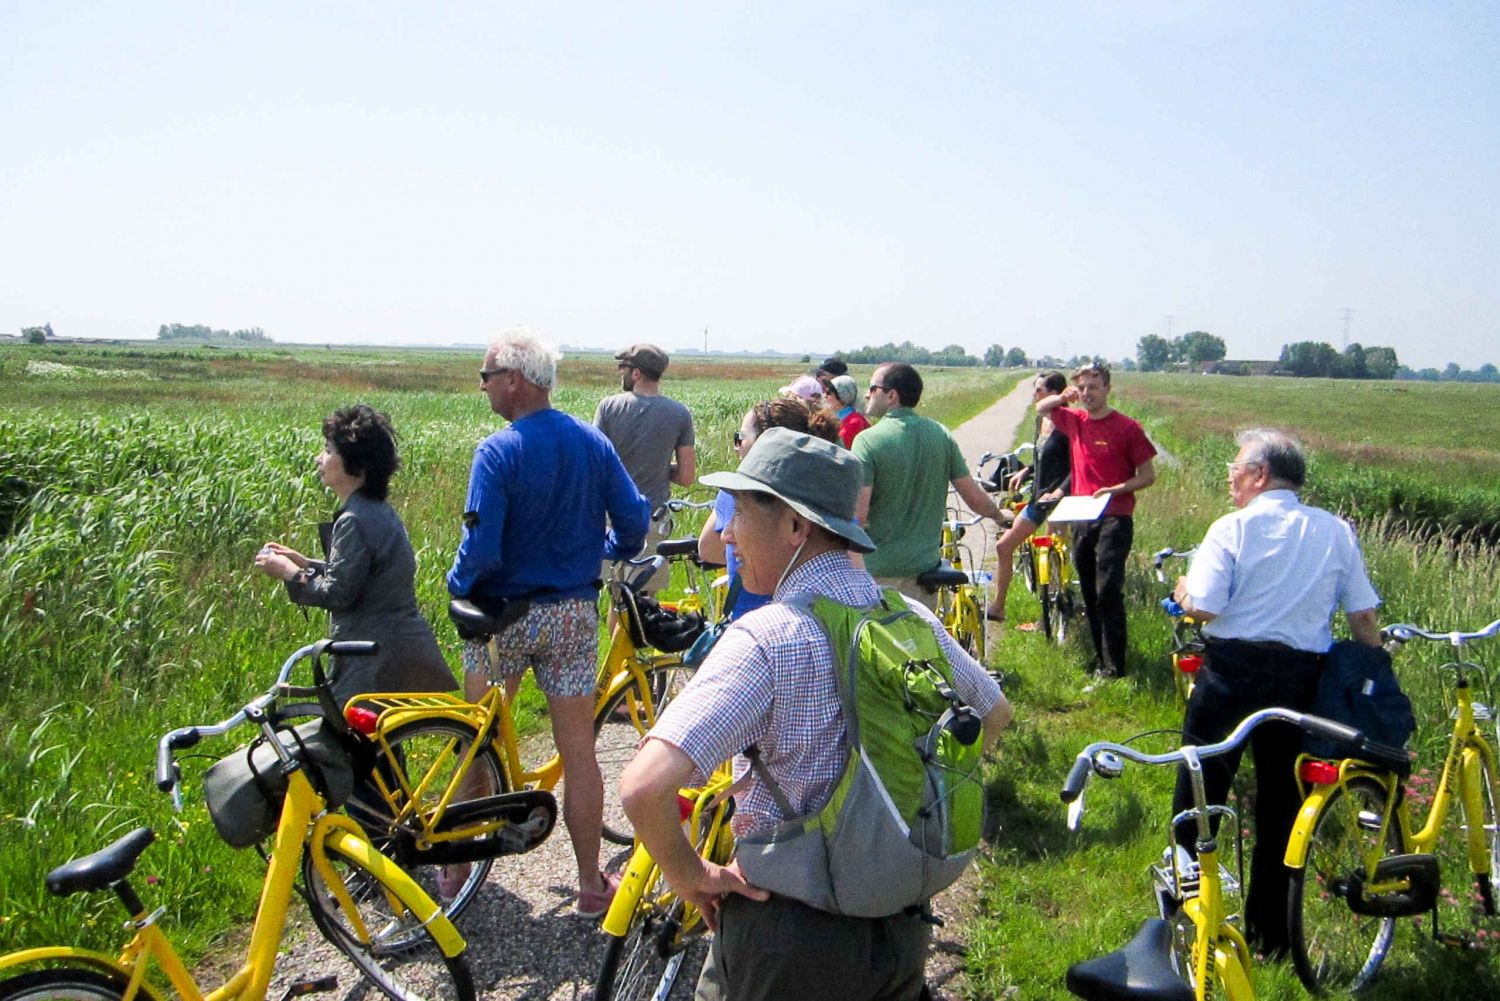 Half-Day Countryside Bike Tour from Amsterdam